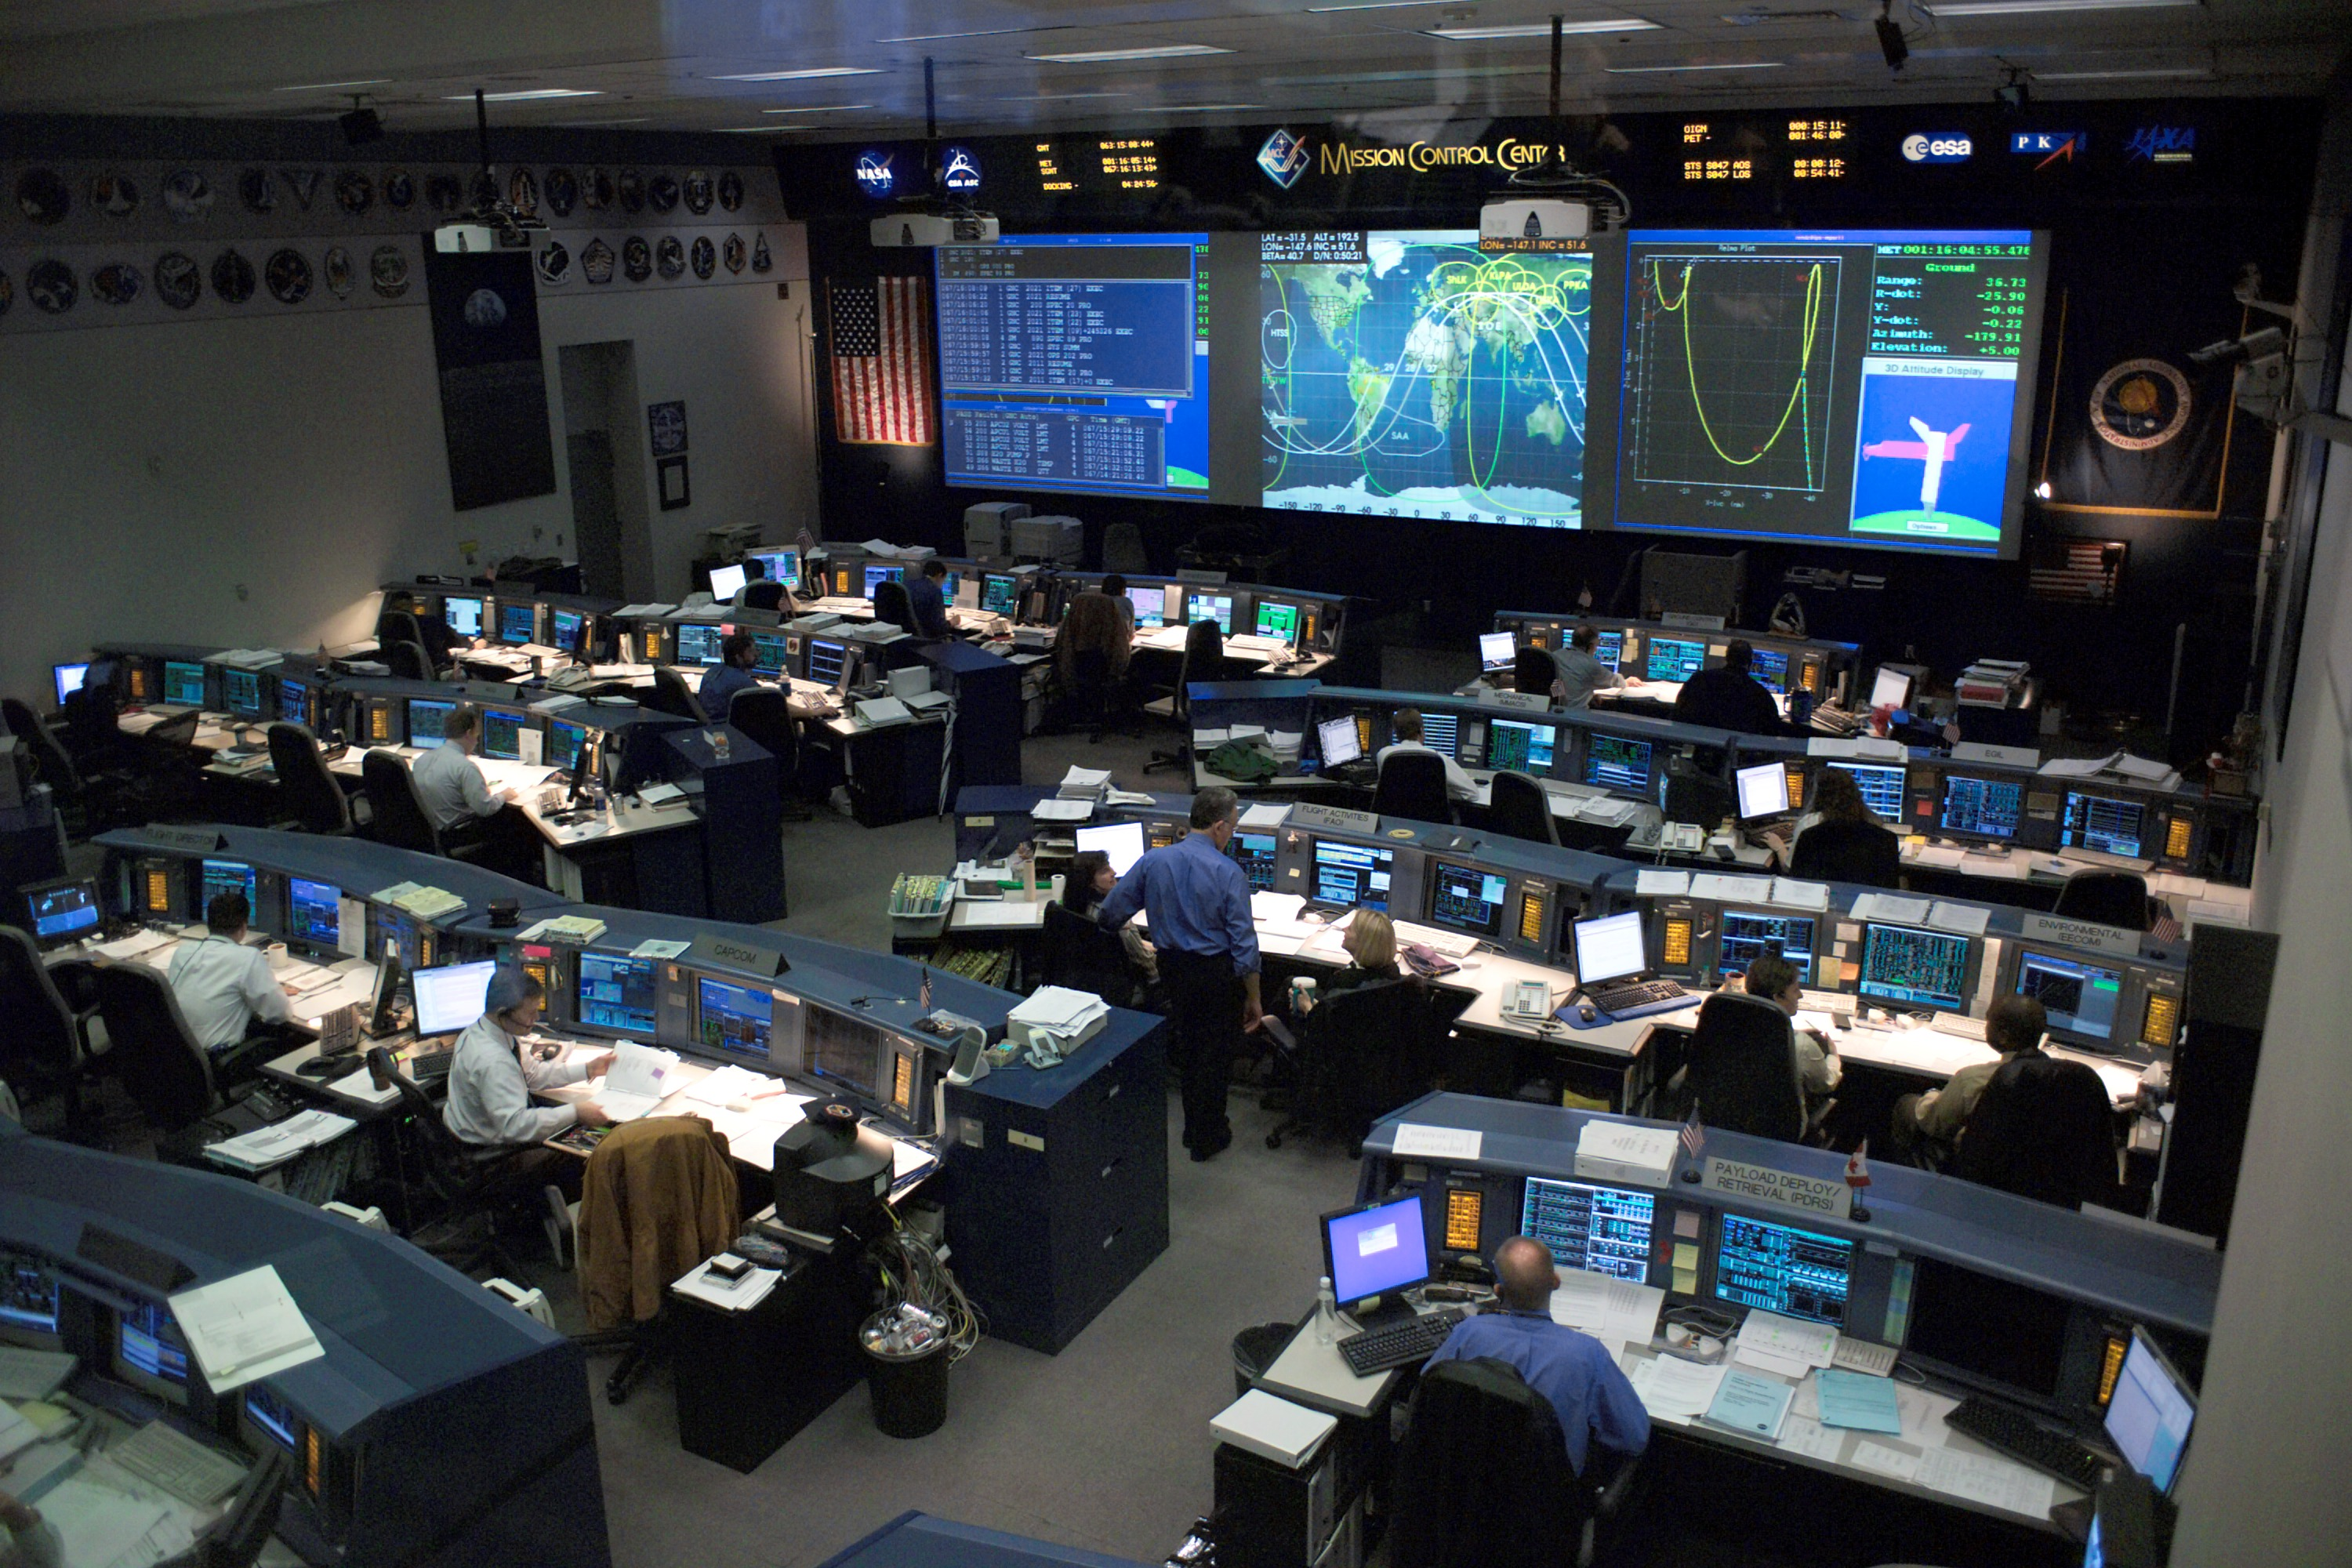 houston mission control center - photo #1